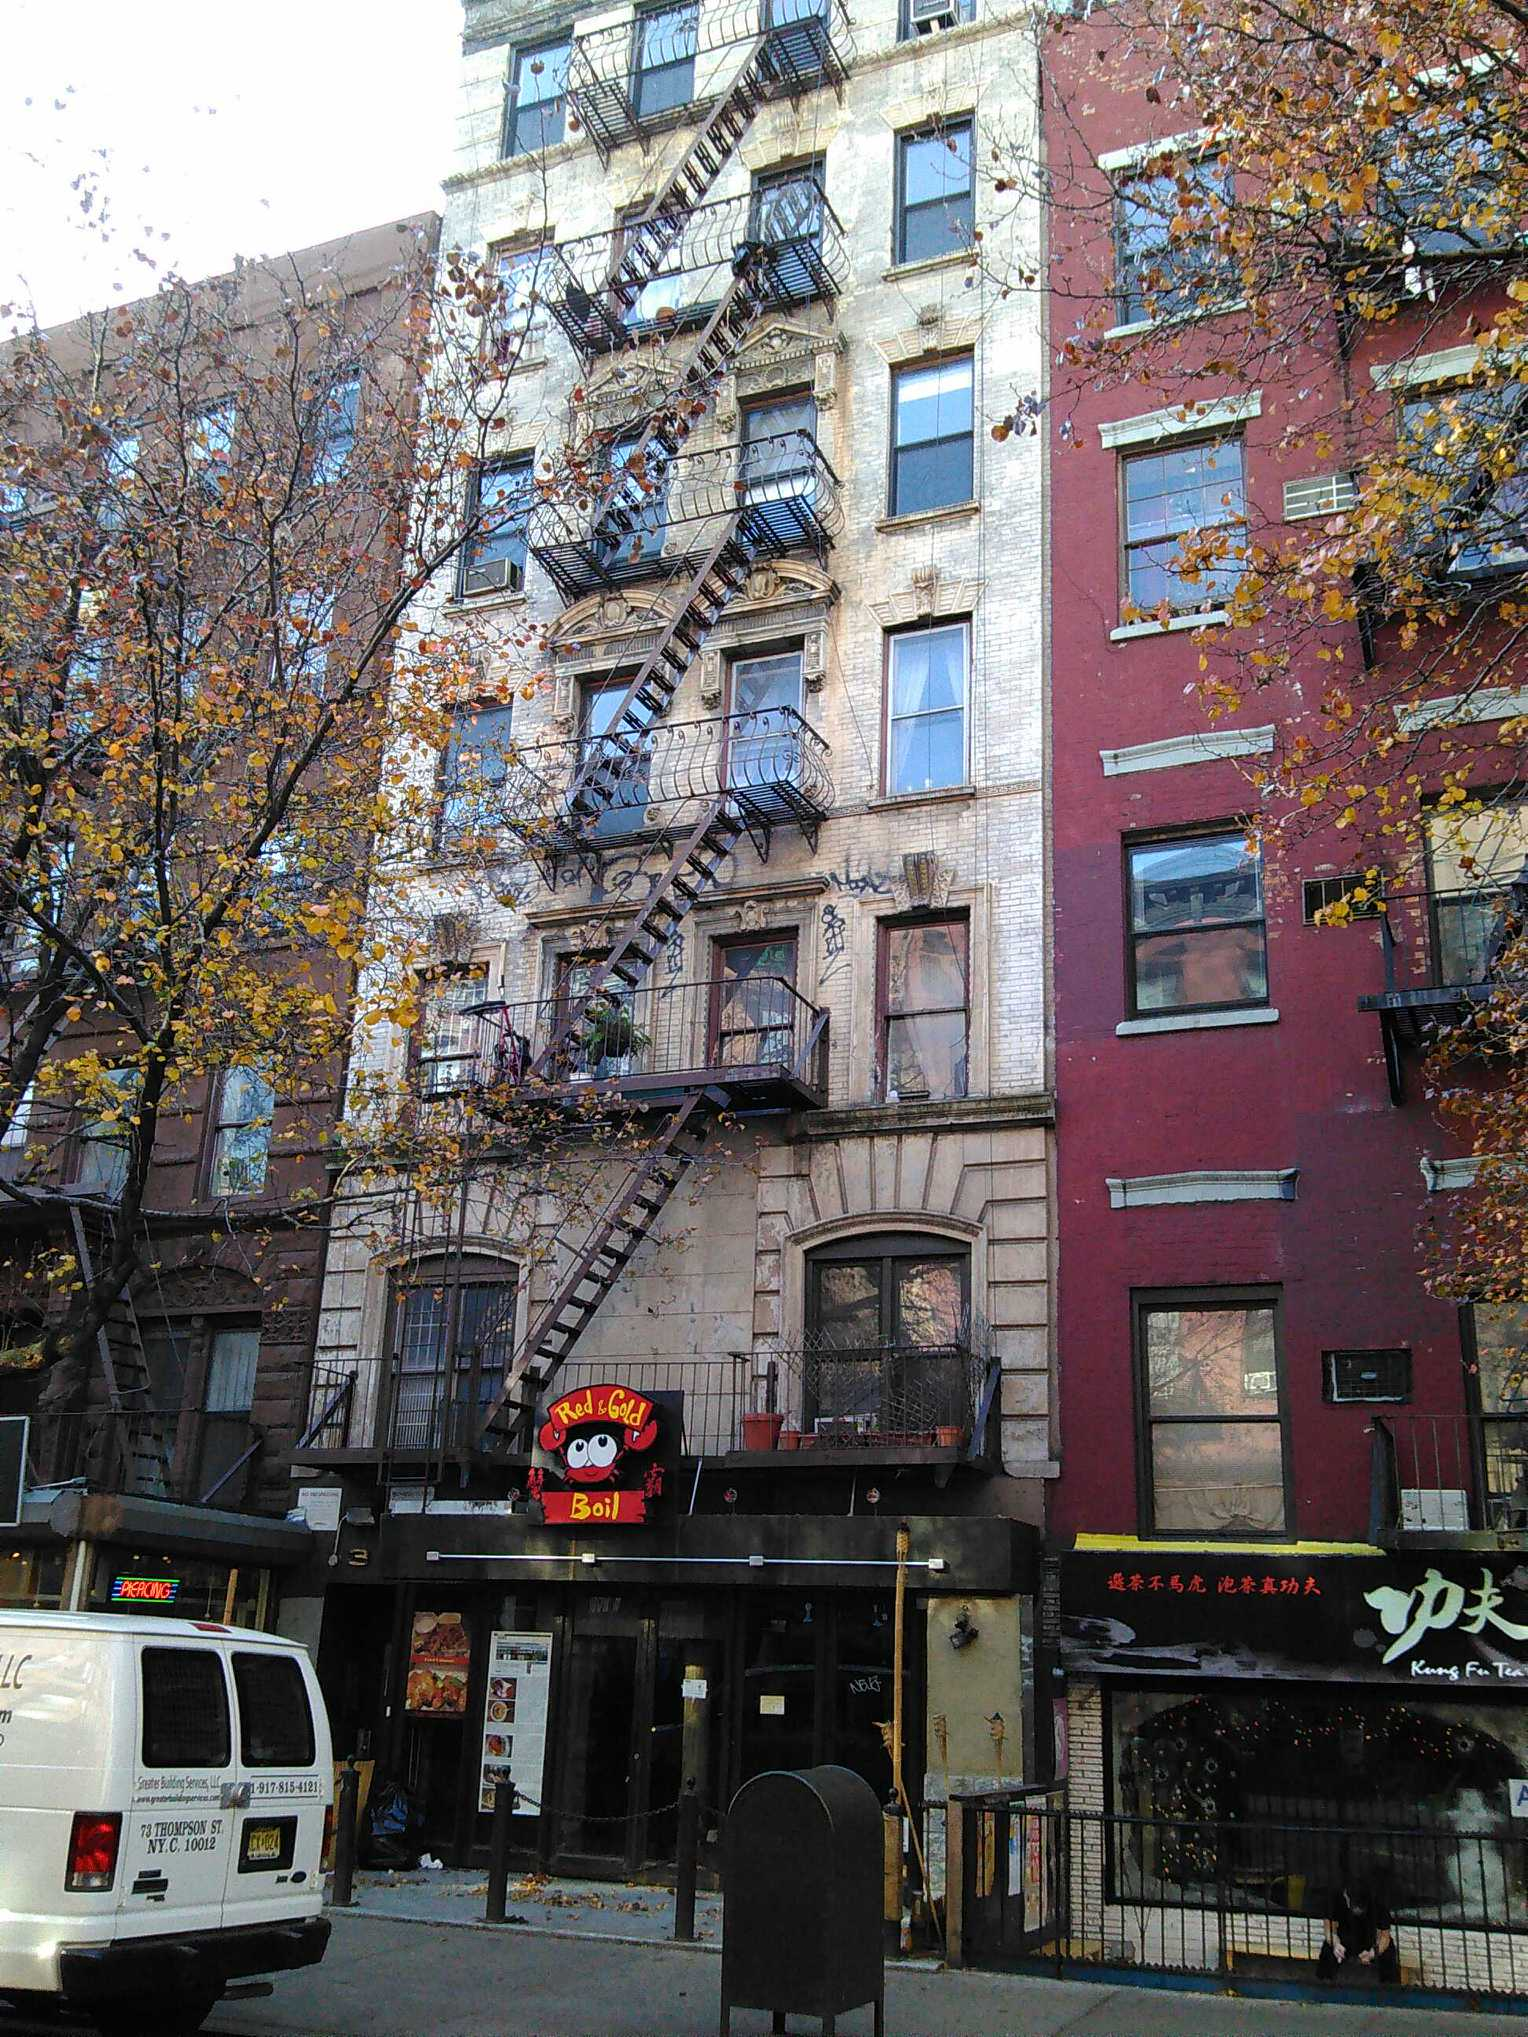 The '60s figure lived at 30 St. Mark's Place from 1967 to 1974. First in the basement, then apartment 4D.